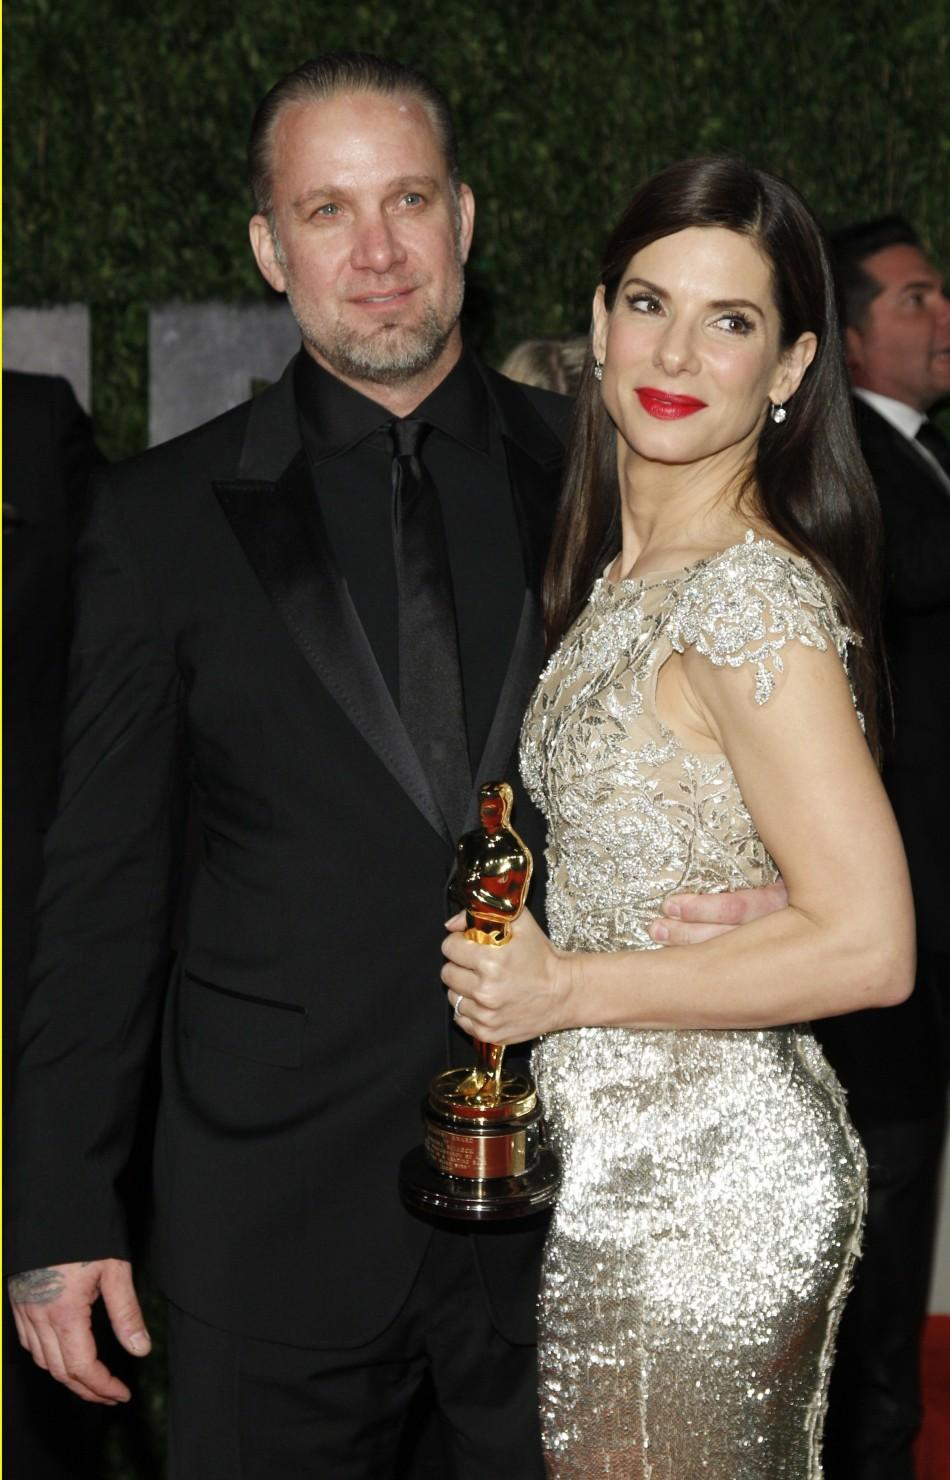 Jesse James and his ex-wife actress Sandra Bullock